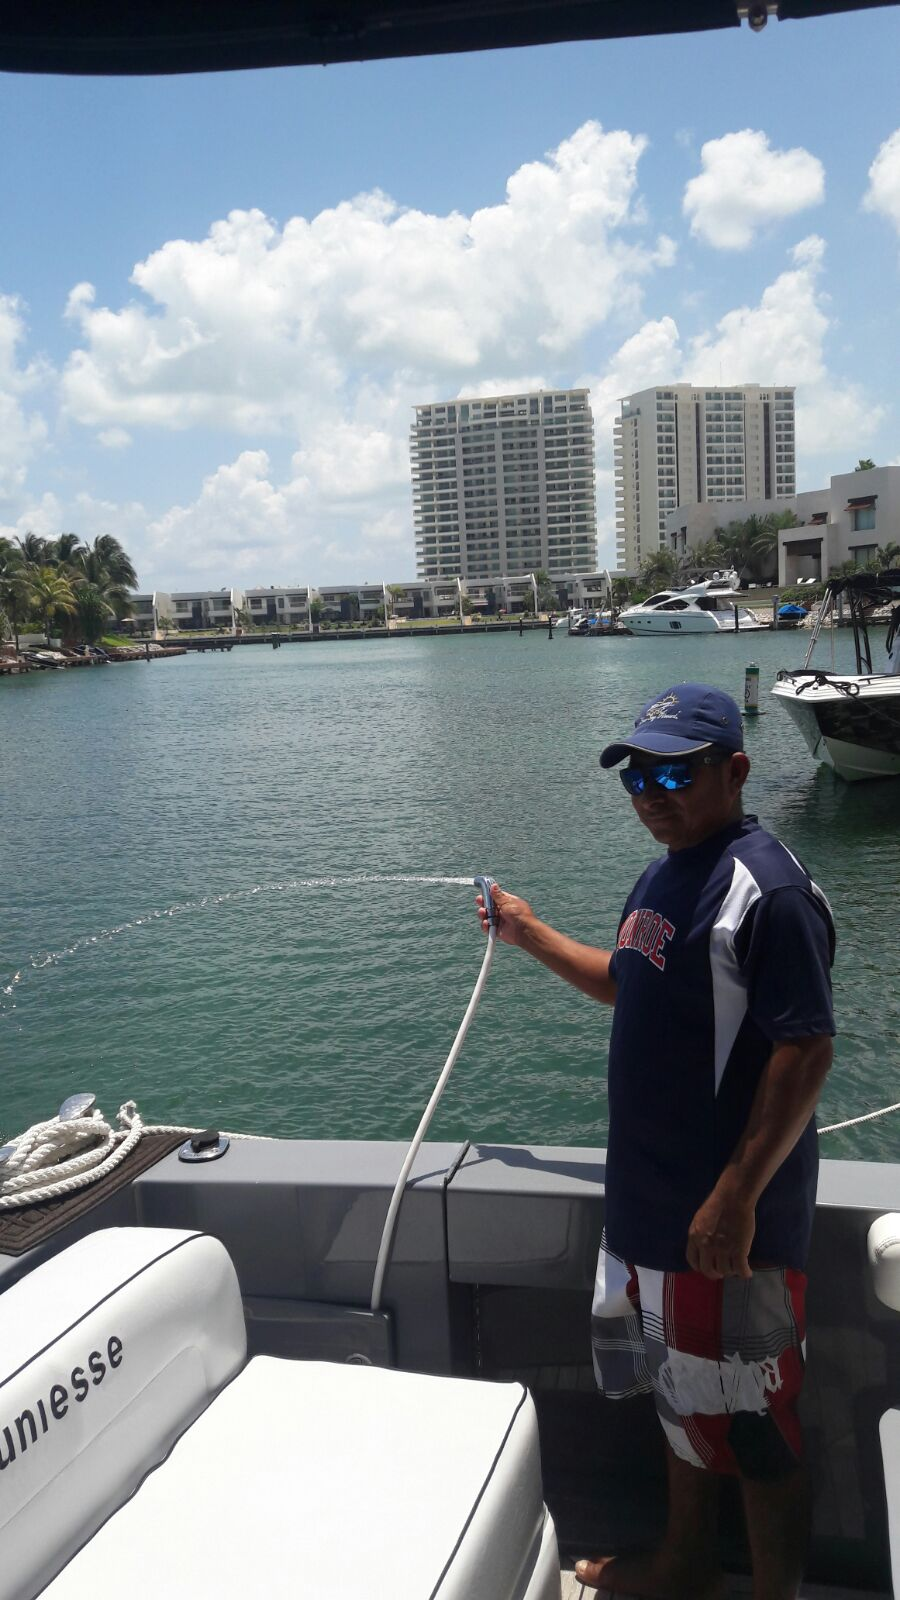 Yacht Charter in Cancun private Luxury yacht charter in cancun sport fishing isla mujeres puerto morelos puerto aventuras cozumel fishing boat fishing charter fishing trip Caribbean fishing charter Uniesse Sapartan 48 Feet in cancun bachelorette party long charter in the caribbean holbox charter